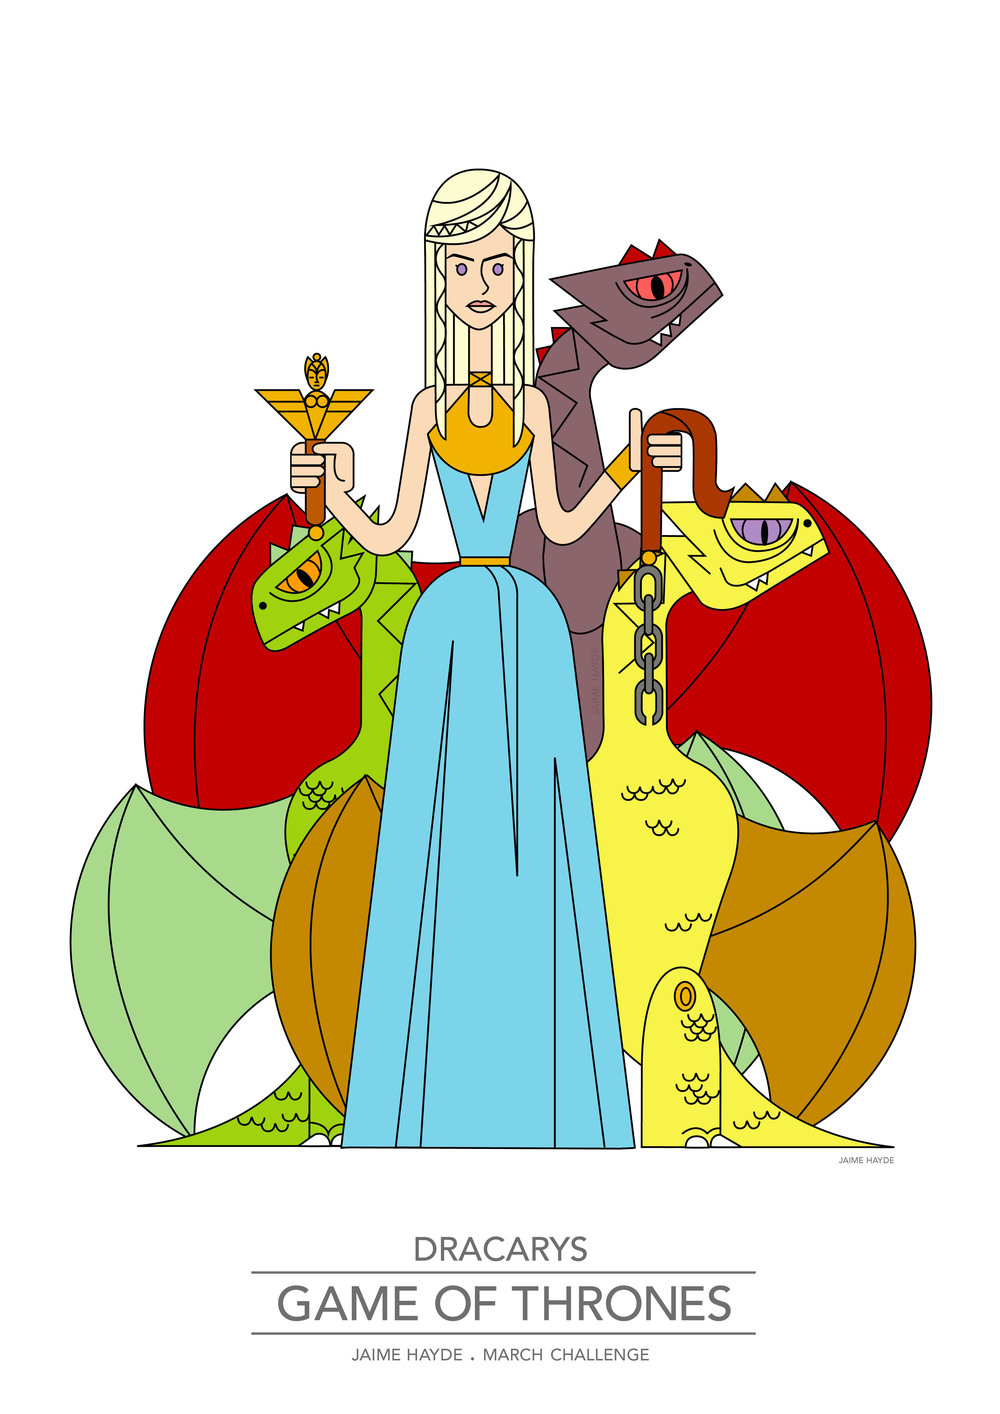 Game-of-thrones-Juego-de-tronos-daenerys.jpg